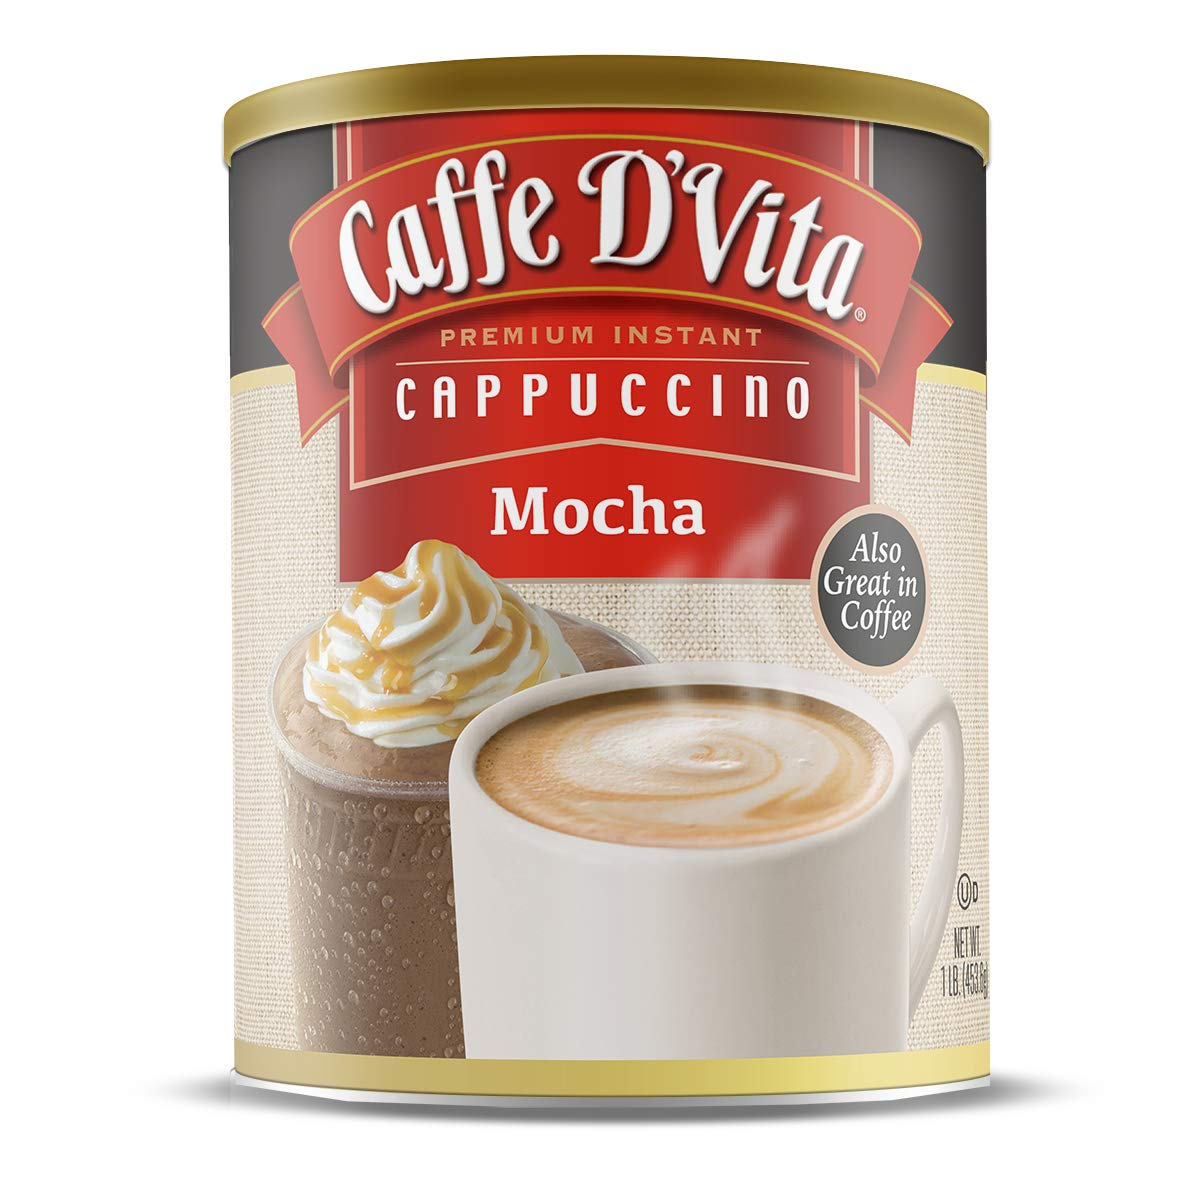 Caffe D'Vita Mocha Instant Cappuccino Mix / Powder - Pack of 6 - 1 lb. cans (16 oz.)